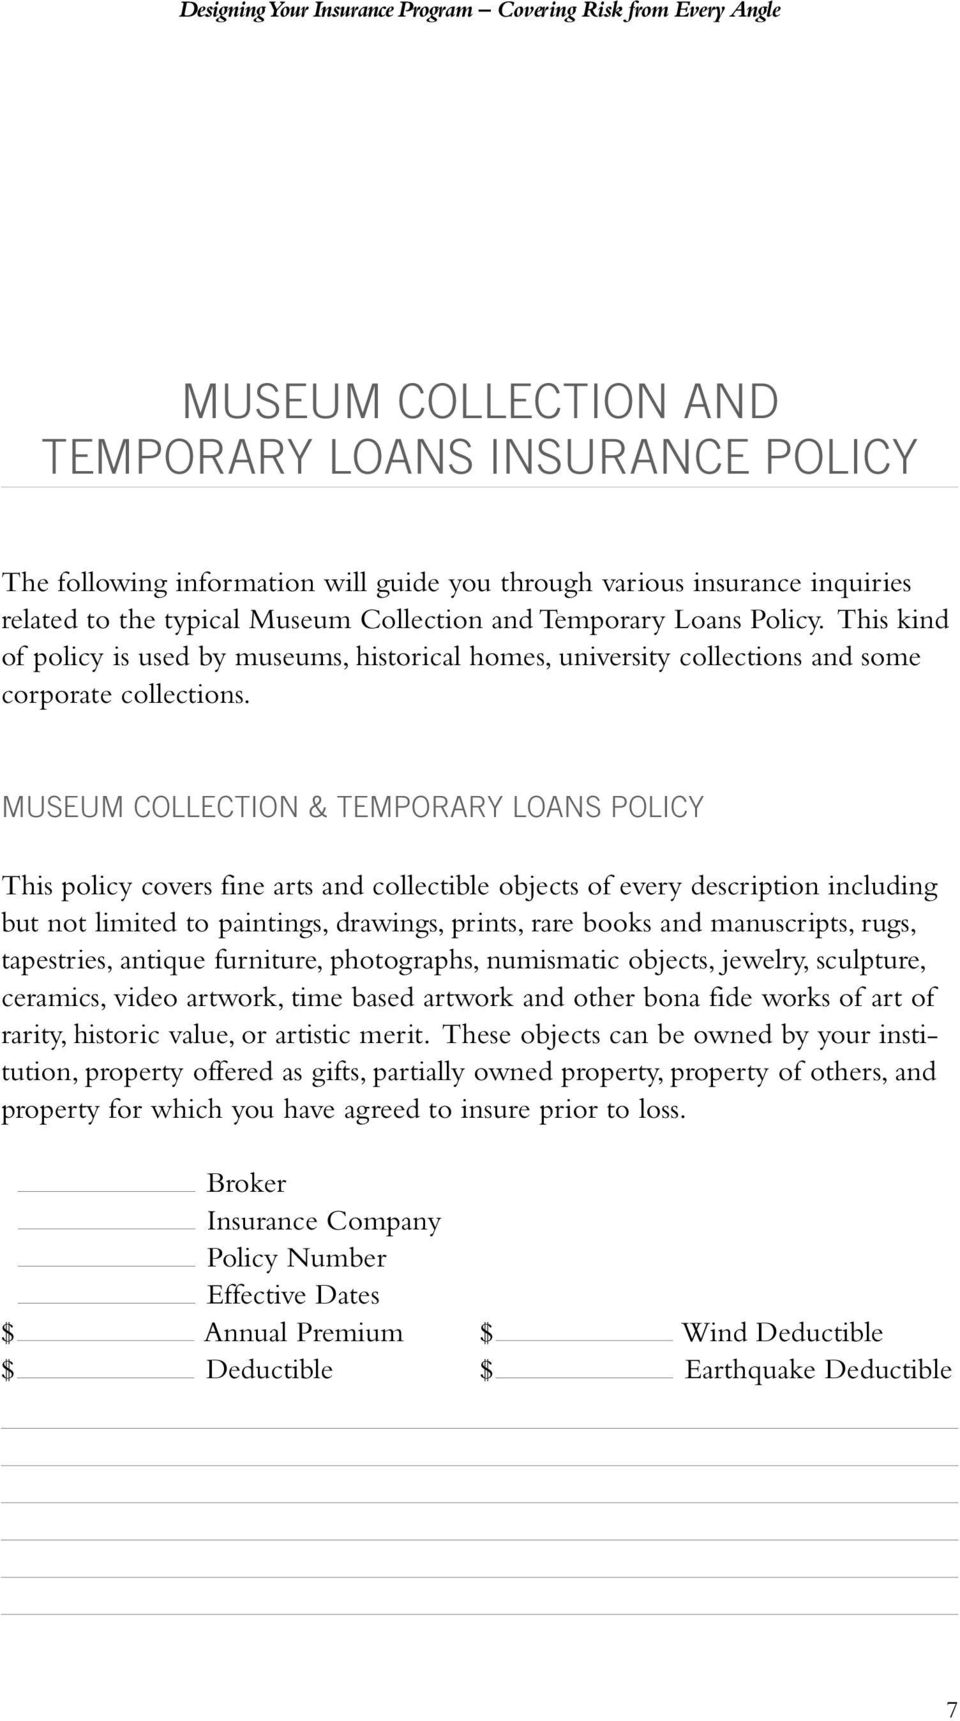 MUSEUM COLLECTION & TEMPORARY LOANS POLICY This policy covers fine arts and collectible objects of every description including but not limited to paintings, drawings, prints, rare books and